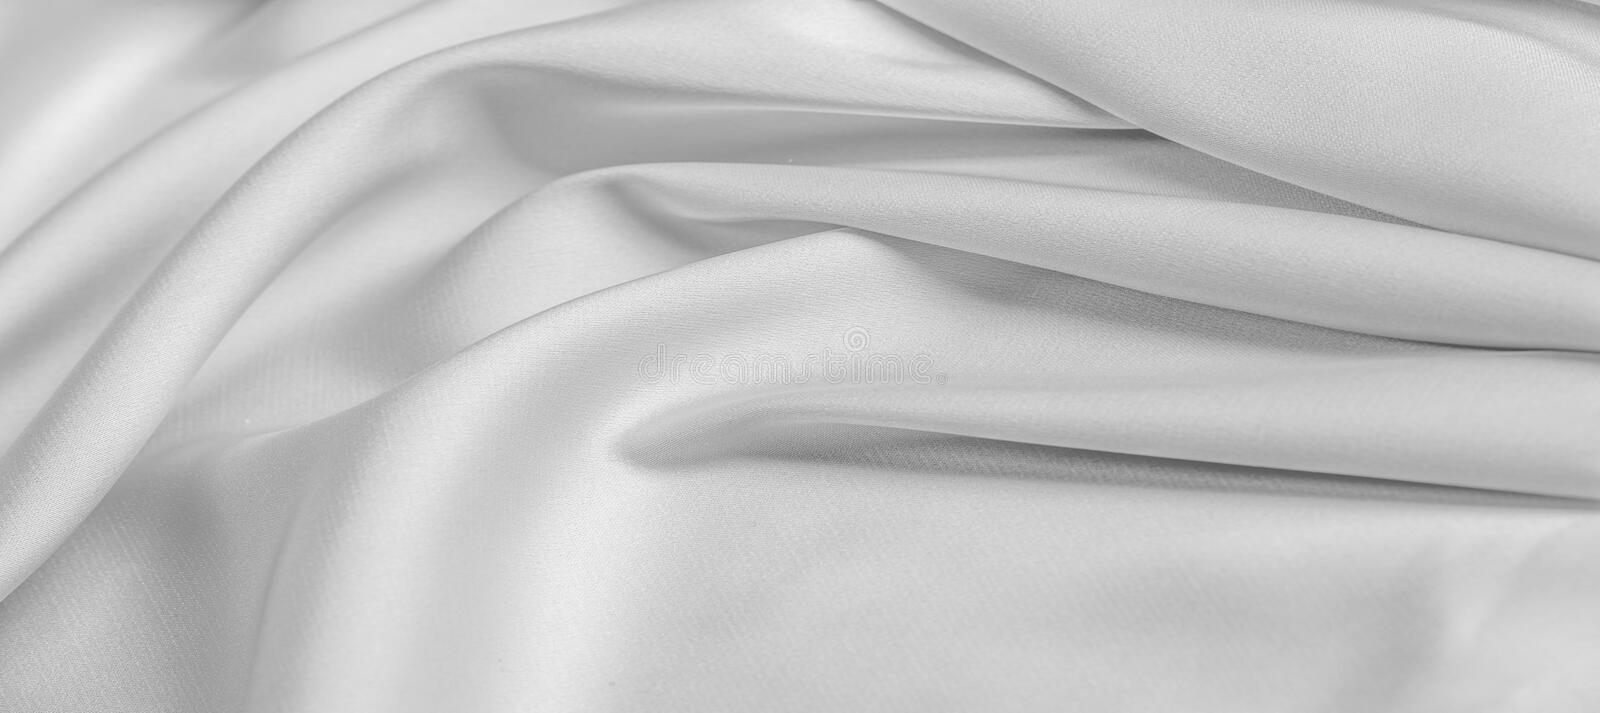 Background texture, pattern. White silk fabric. It has a smooth matte finish and gets its strength from slightly twisted yarns. royalty free stock photography